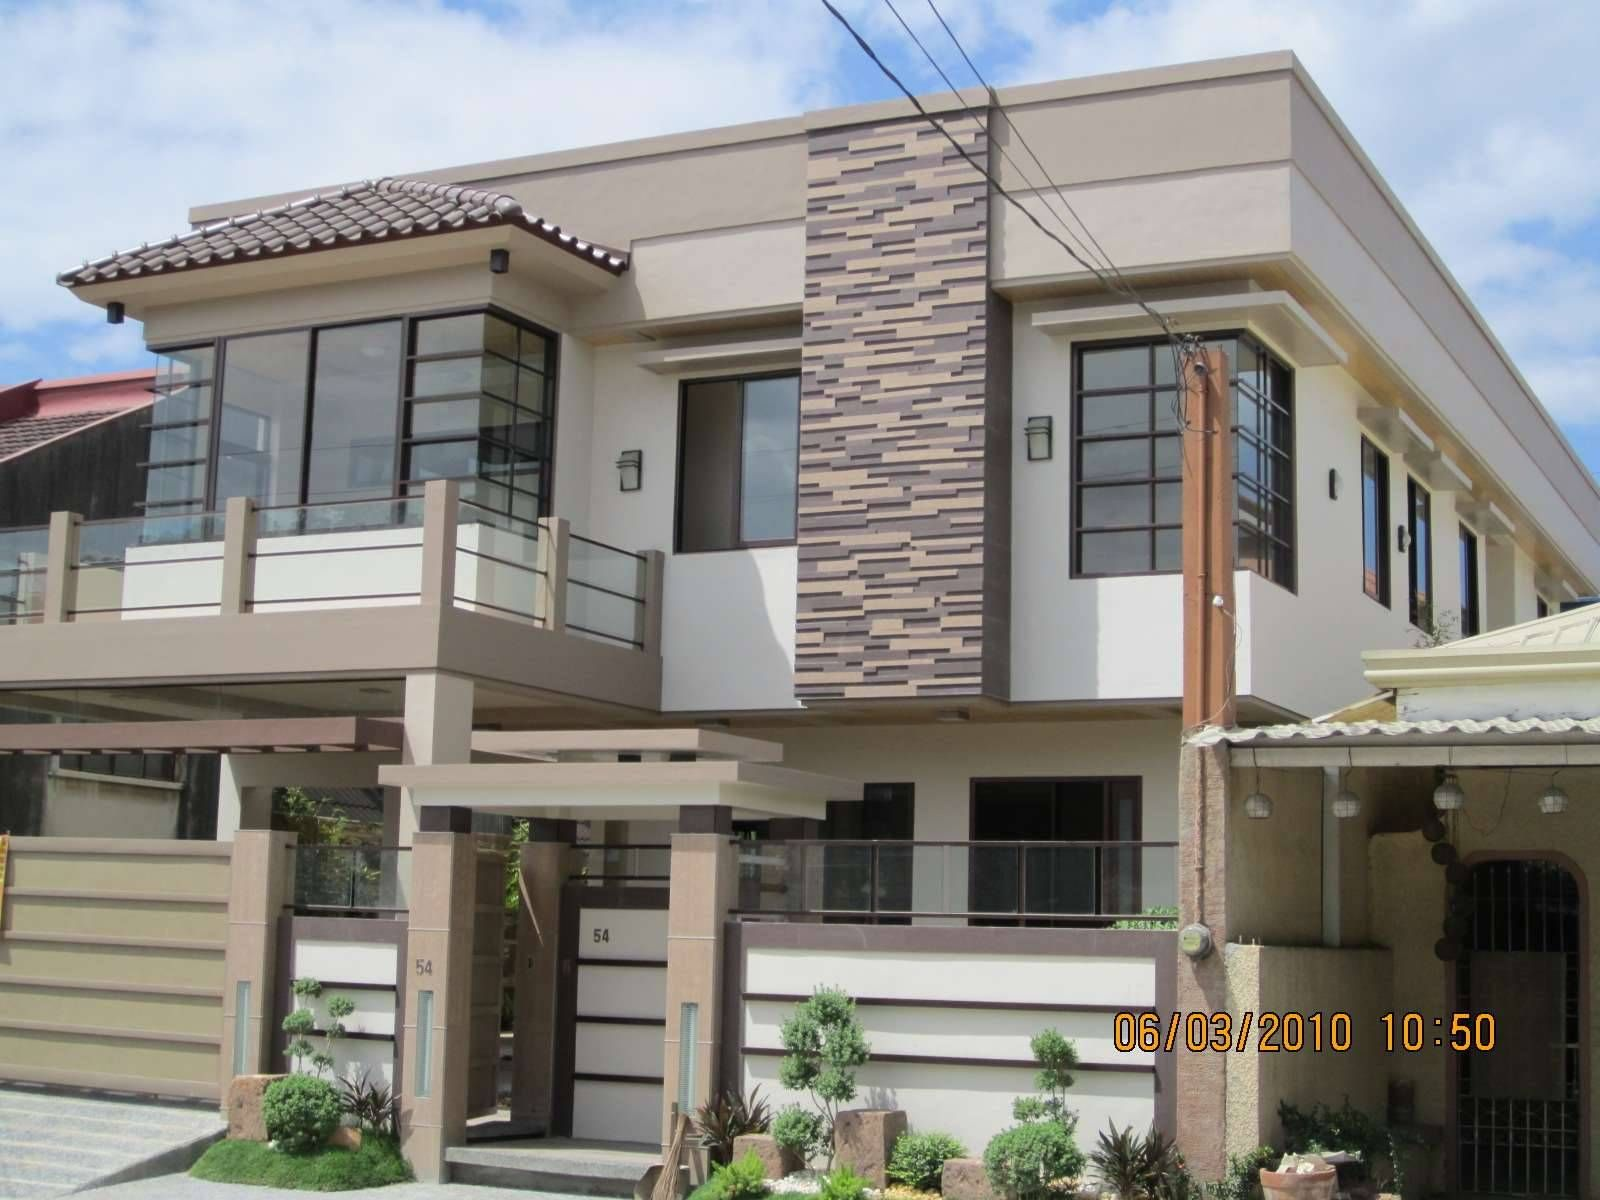 Philippines modern house exterior design dream house for Modern exterior house designs